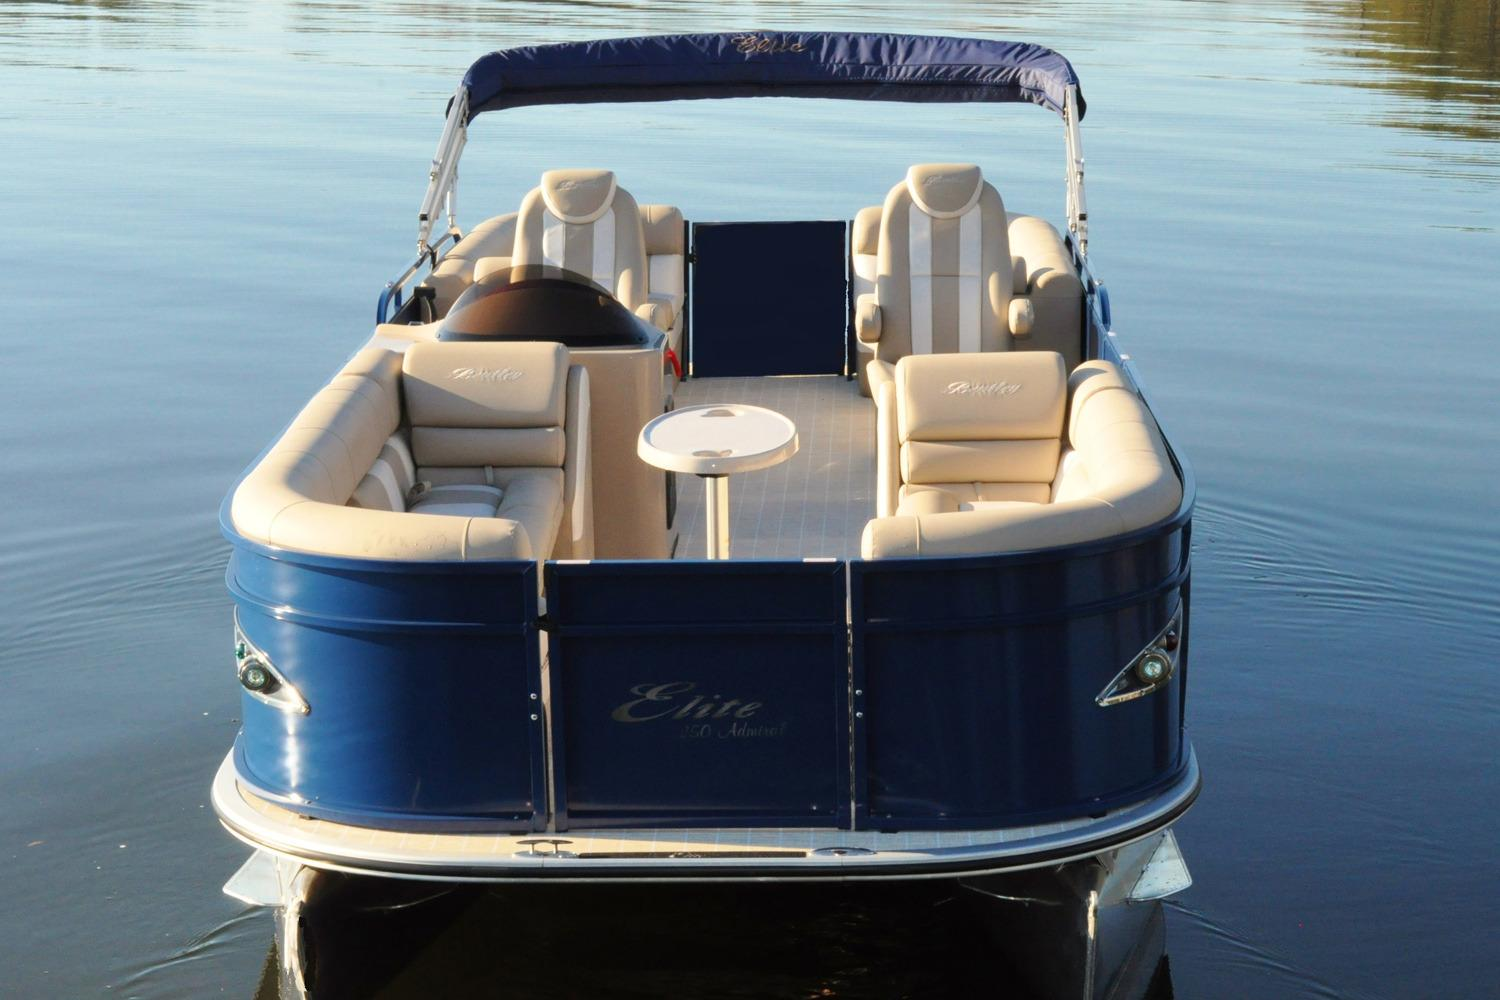 bentley dealers for img pontoon boats sale r cruise